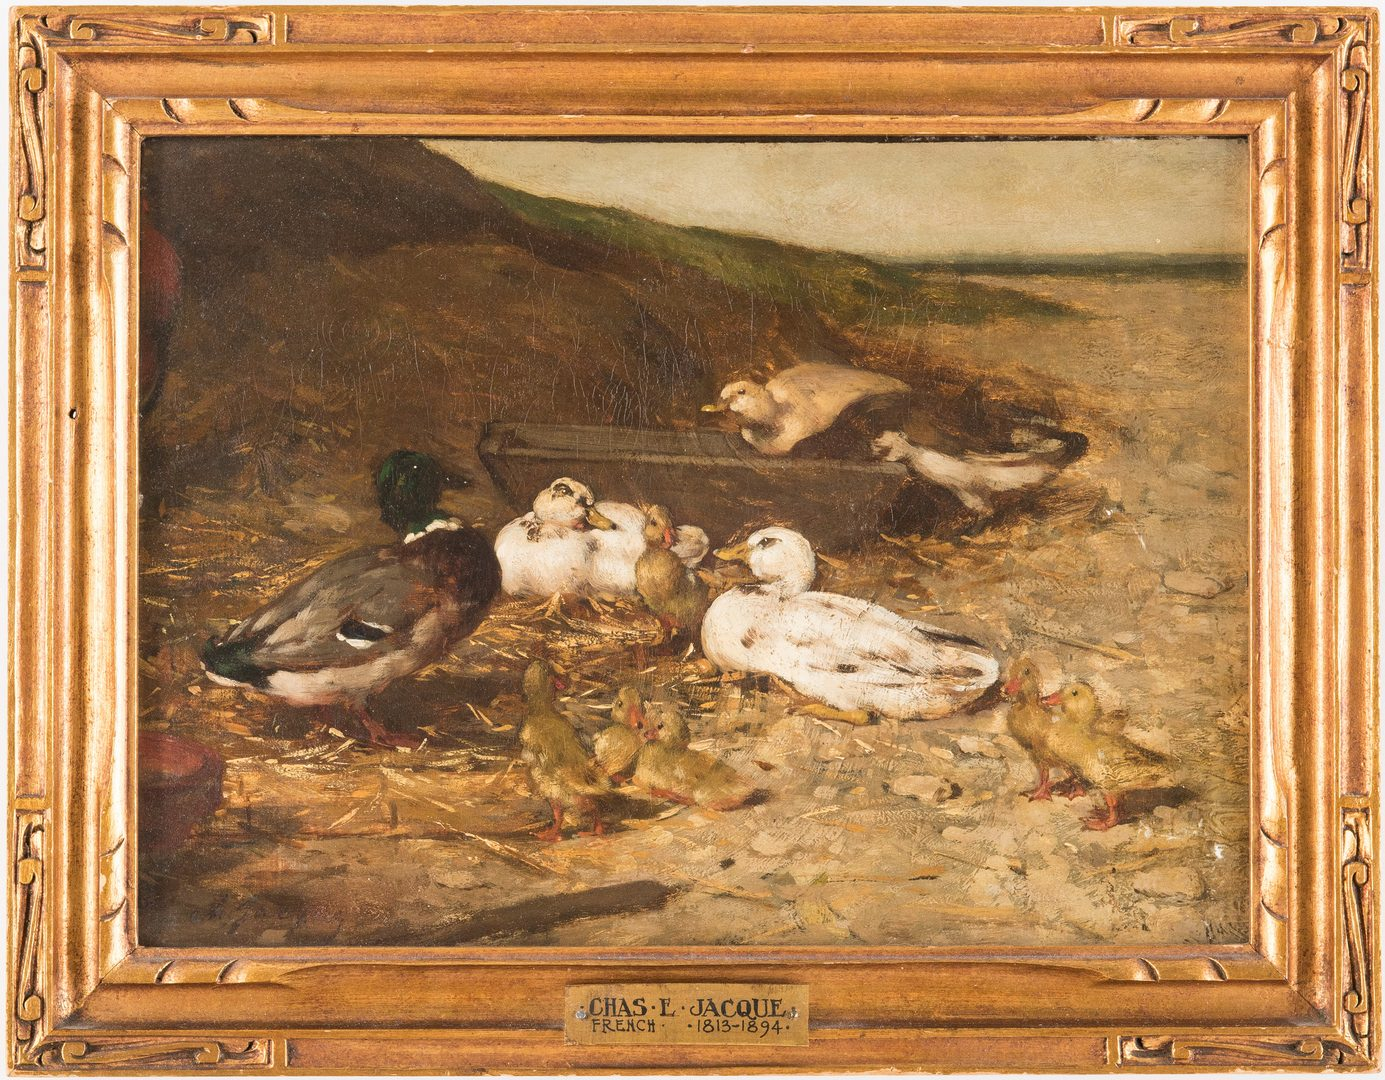 Lot 322: Charles E. Jacque O/C, Ducks on a Seashore